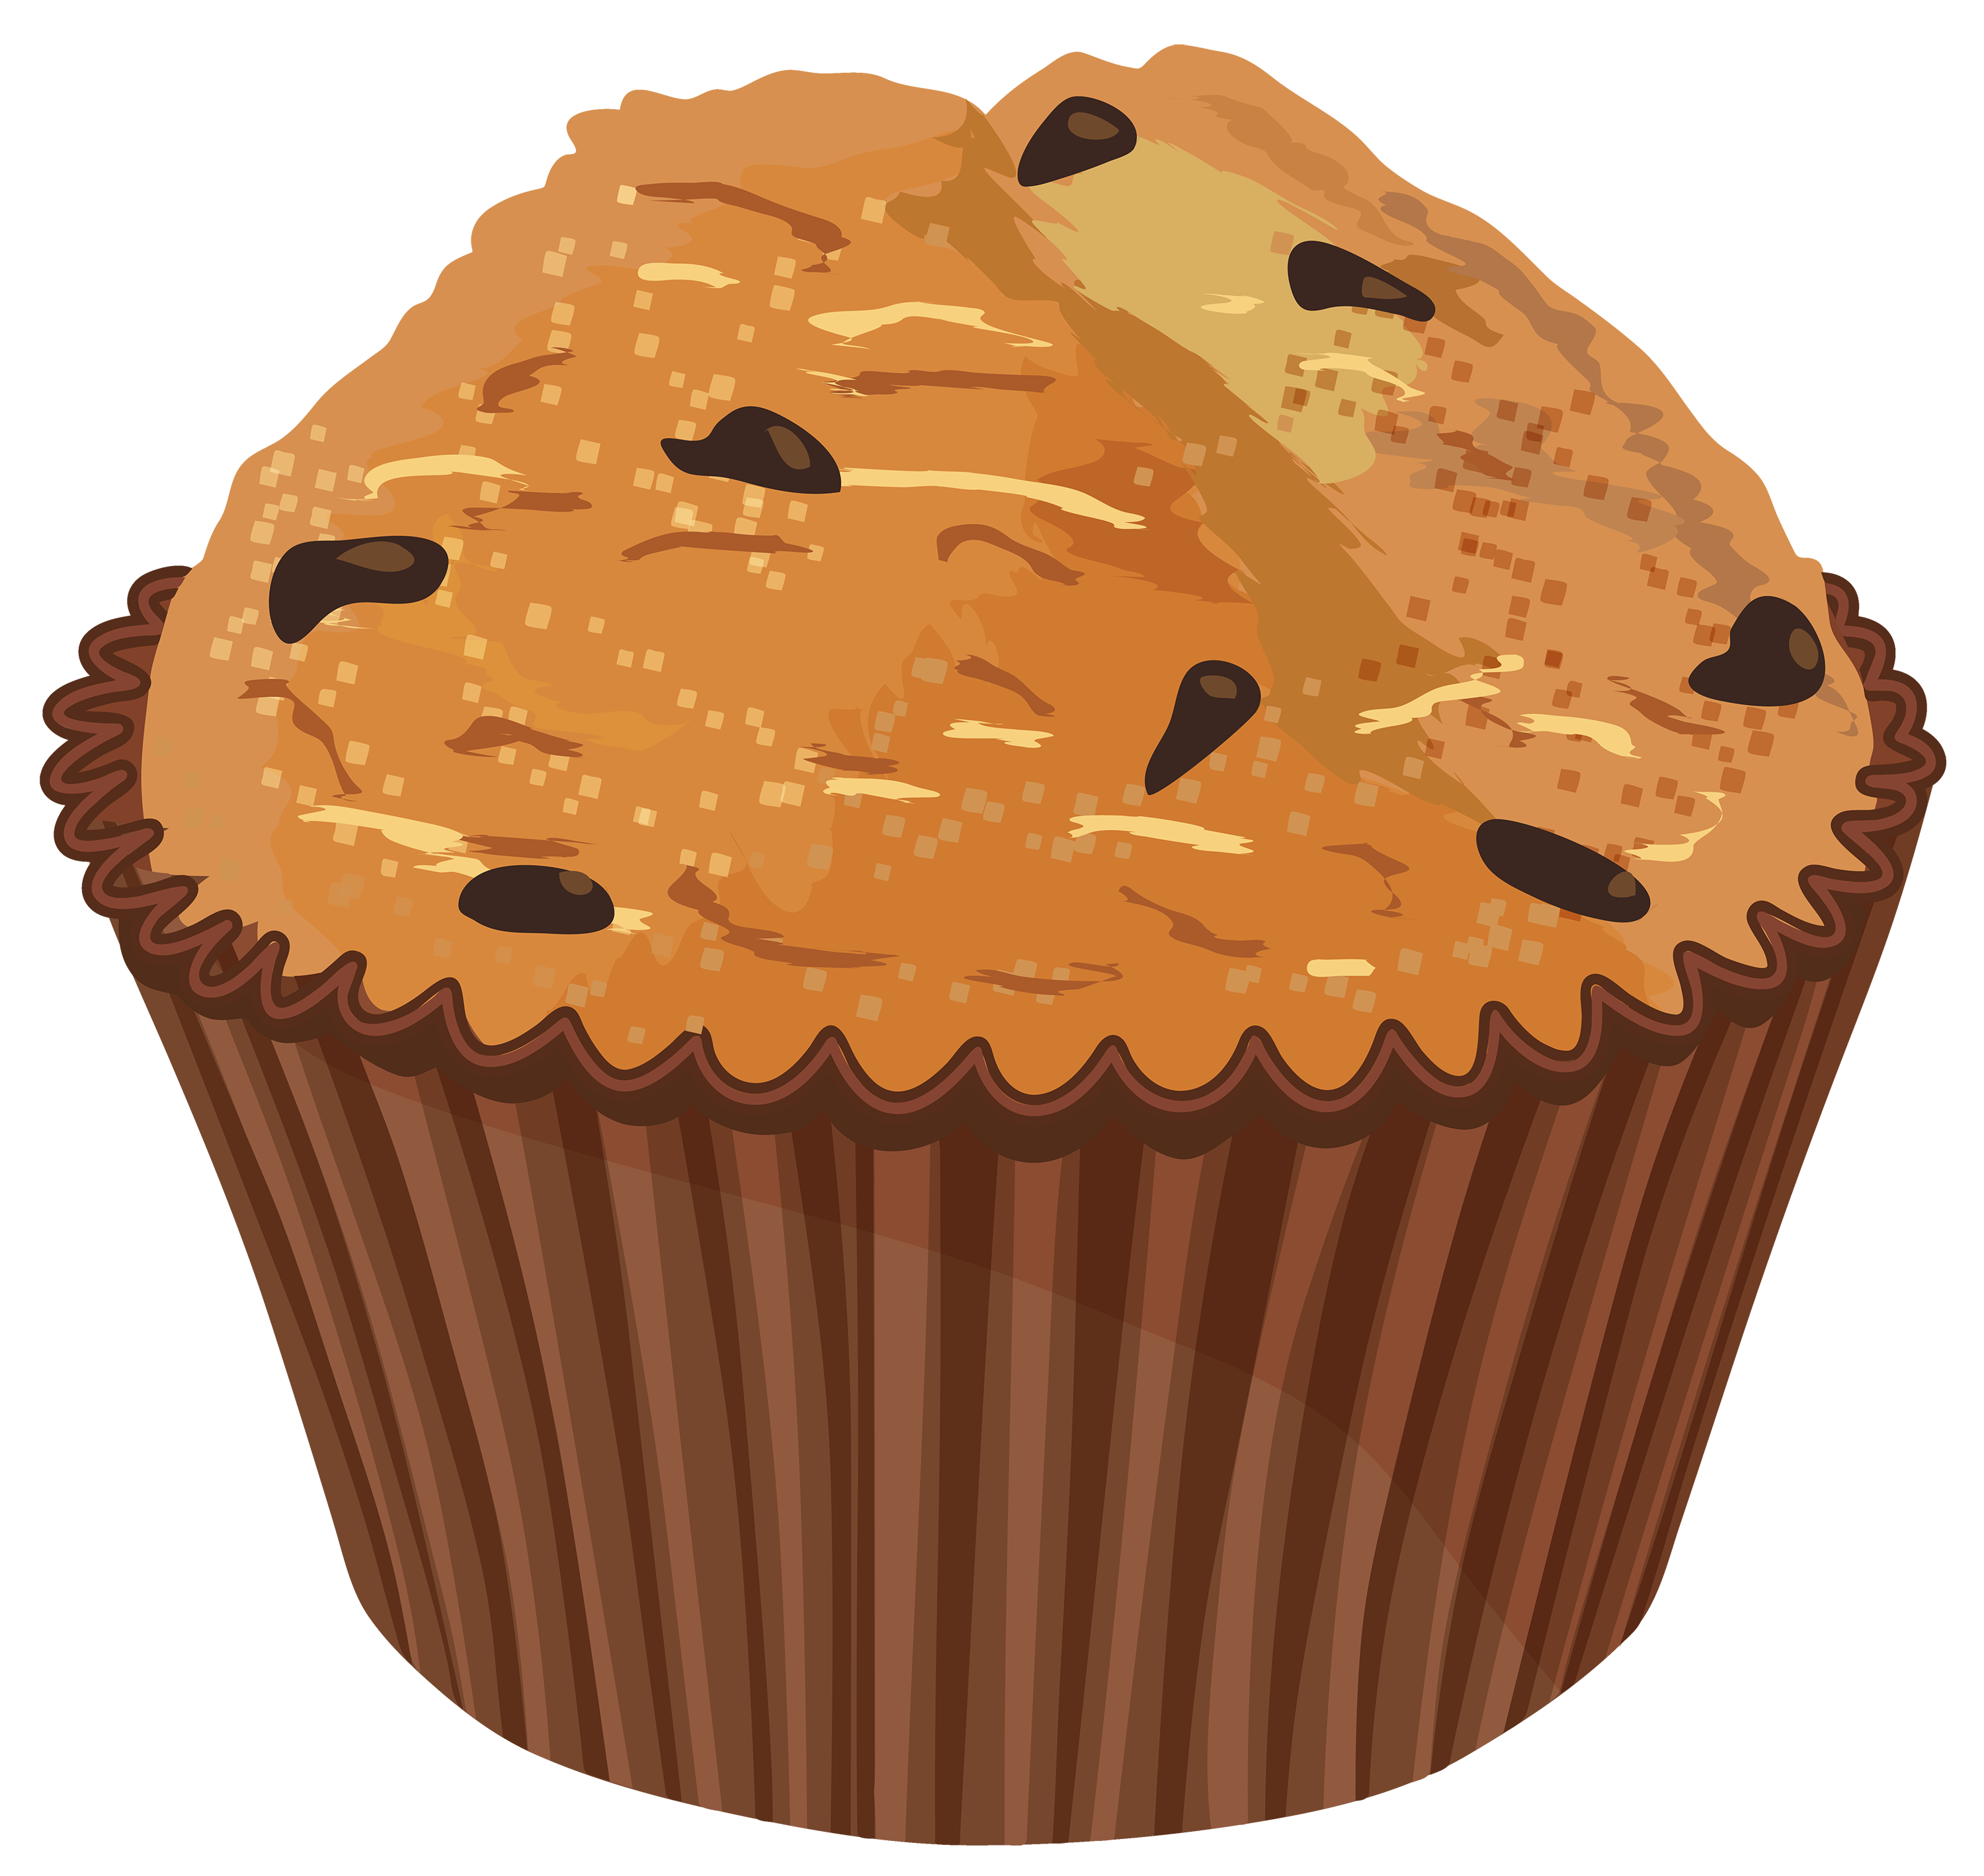 Fast clipart transparent. Muffin png best web